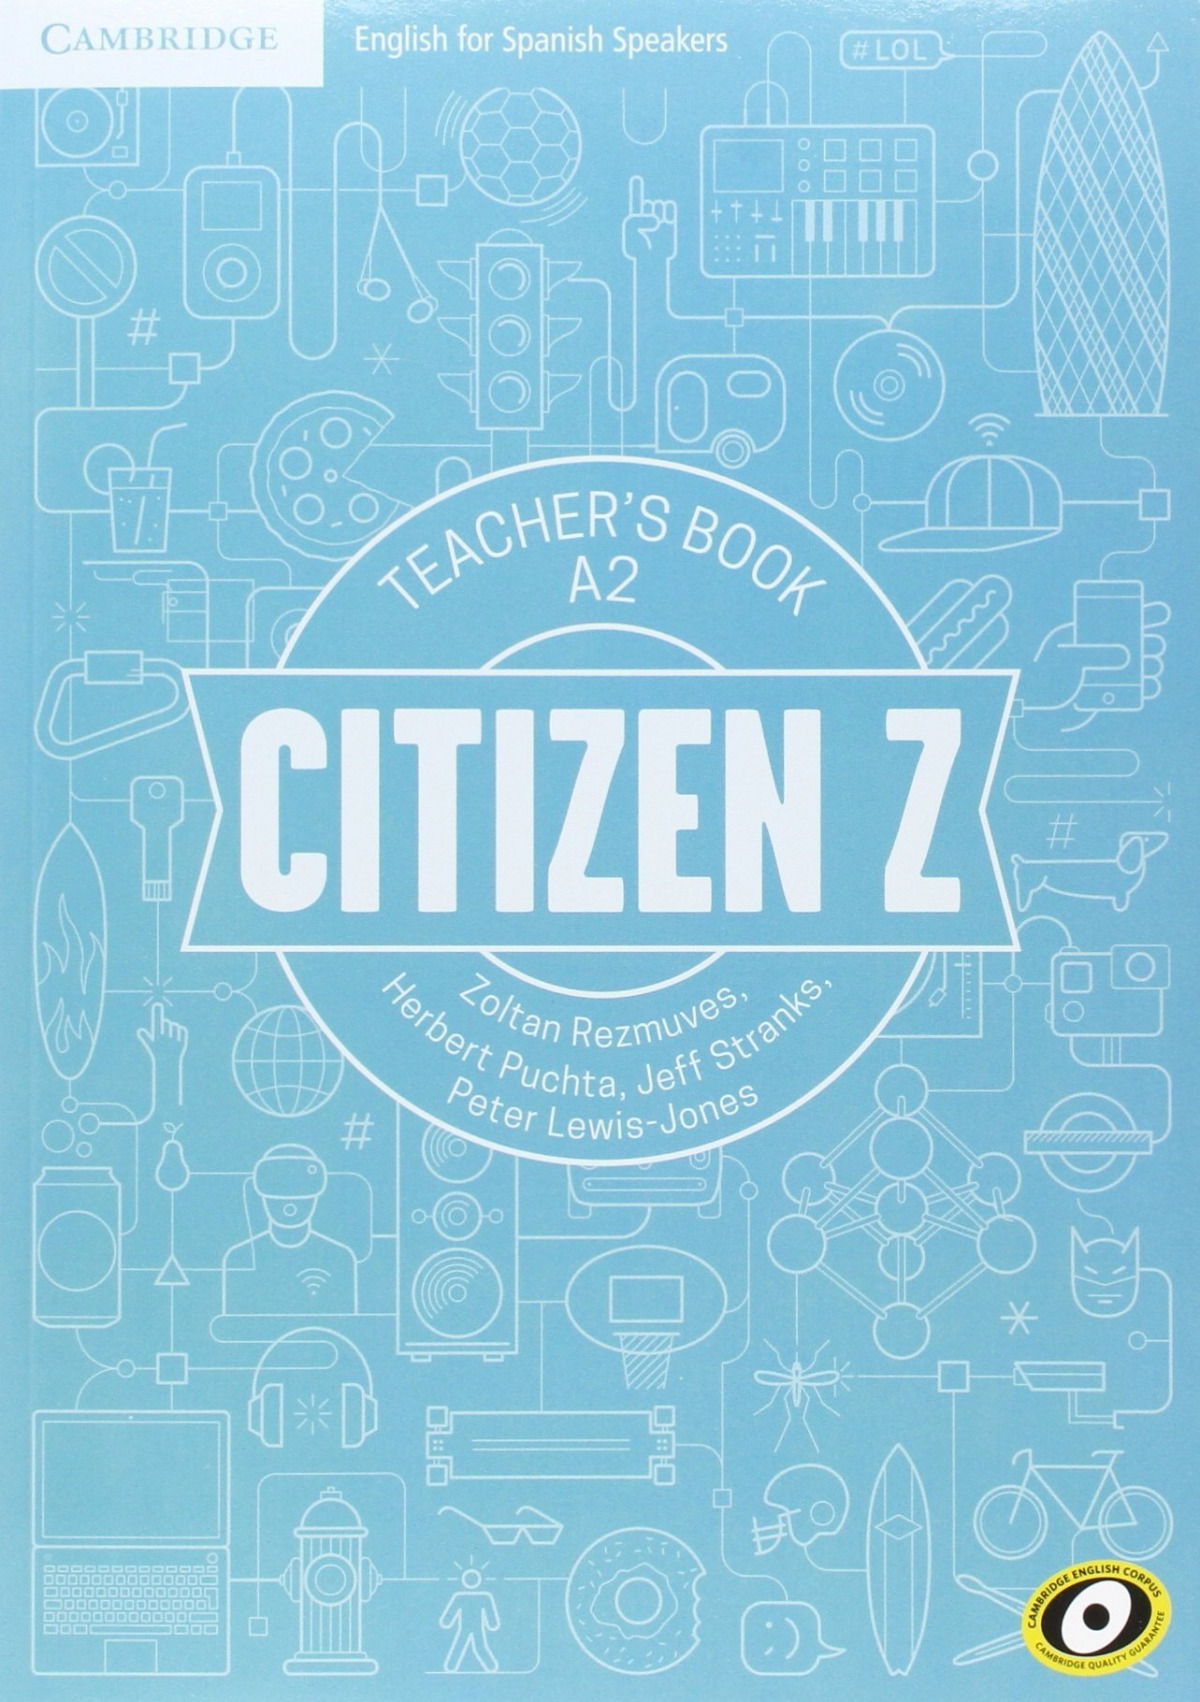 Citizen Z A2 Teacher's Book